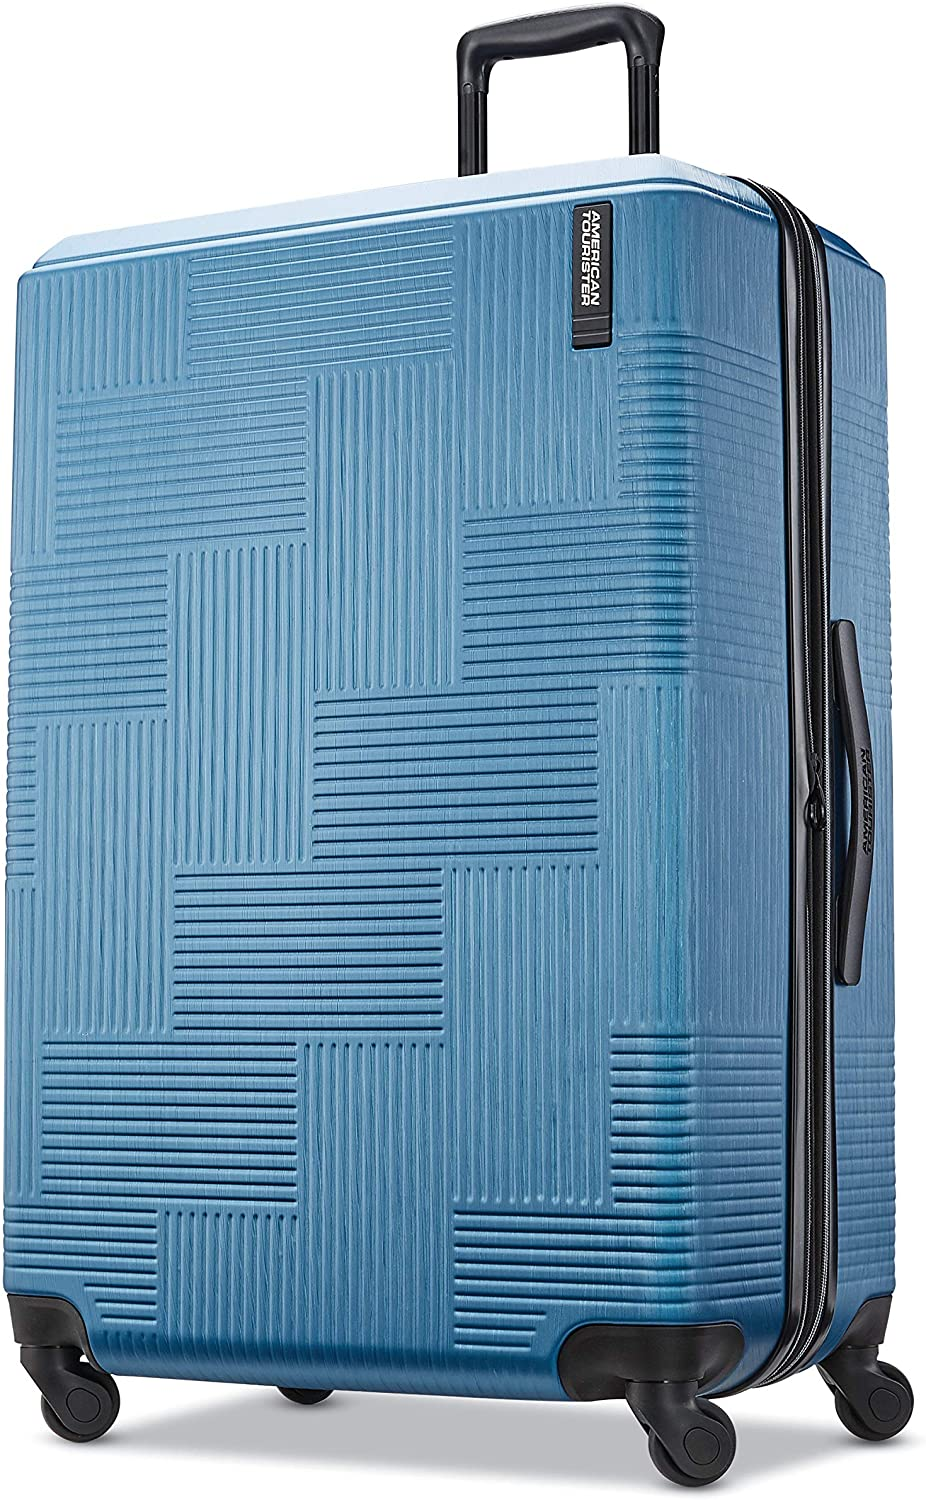 American Tourister Stratum XLT Expandable Hardside Luggage with Spinner Wheels, Blue Spruce, Checked-Large 28-Inch